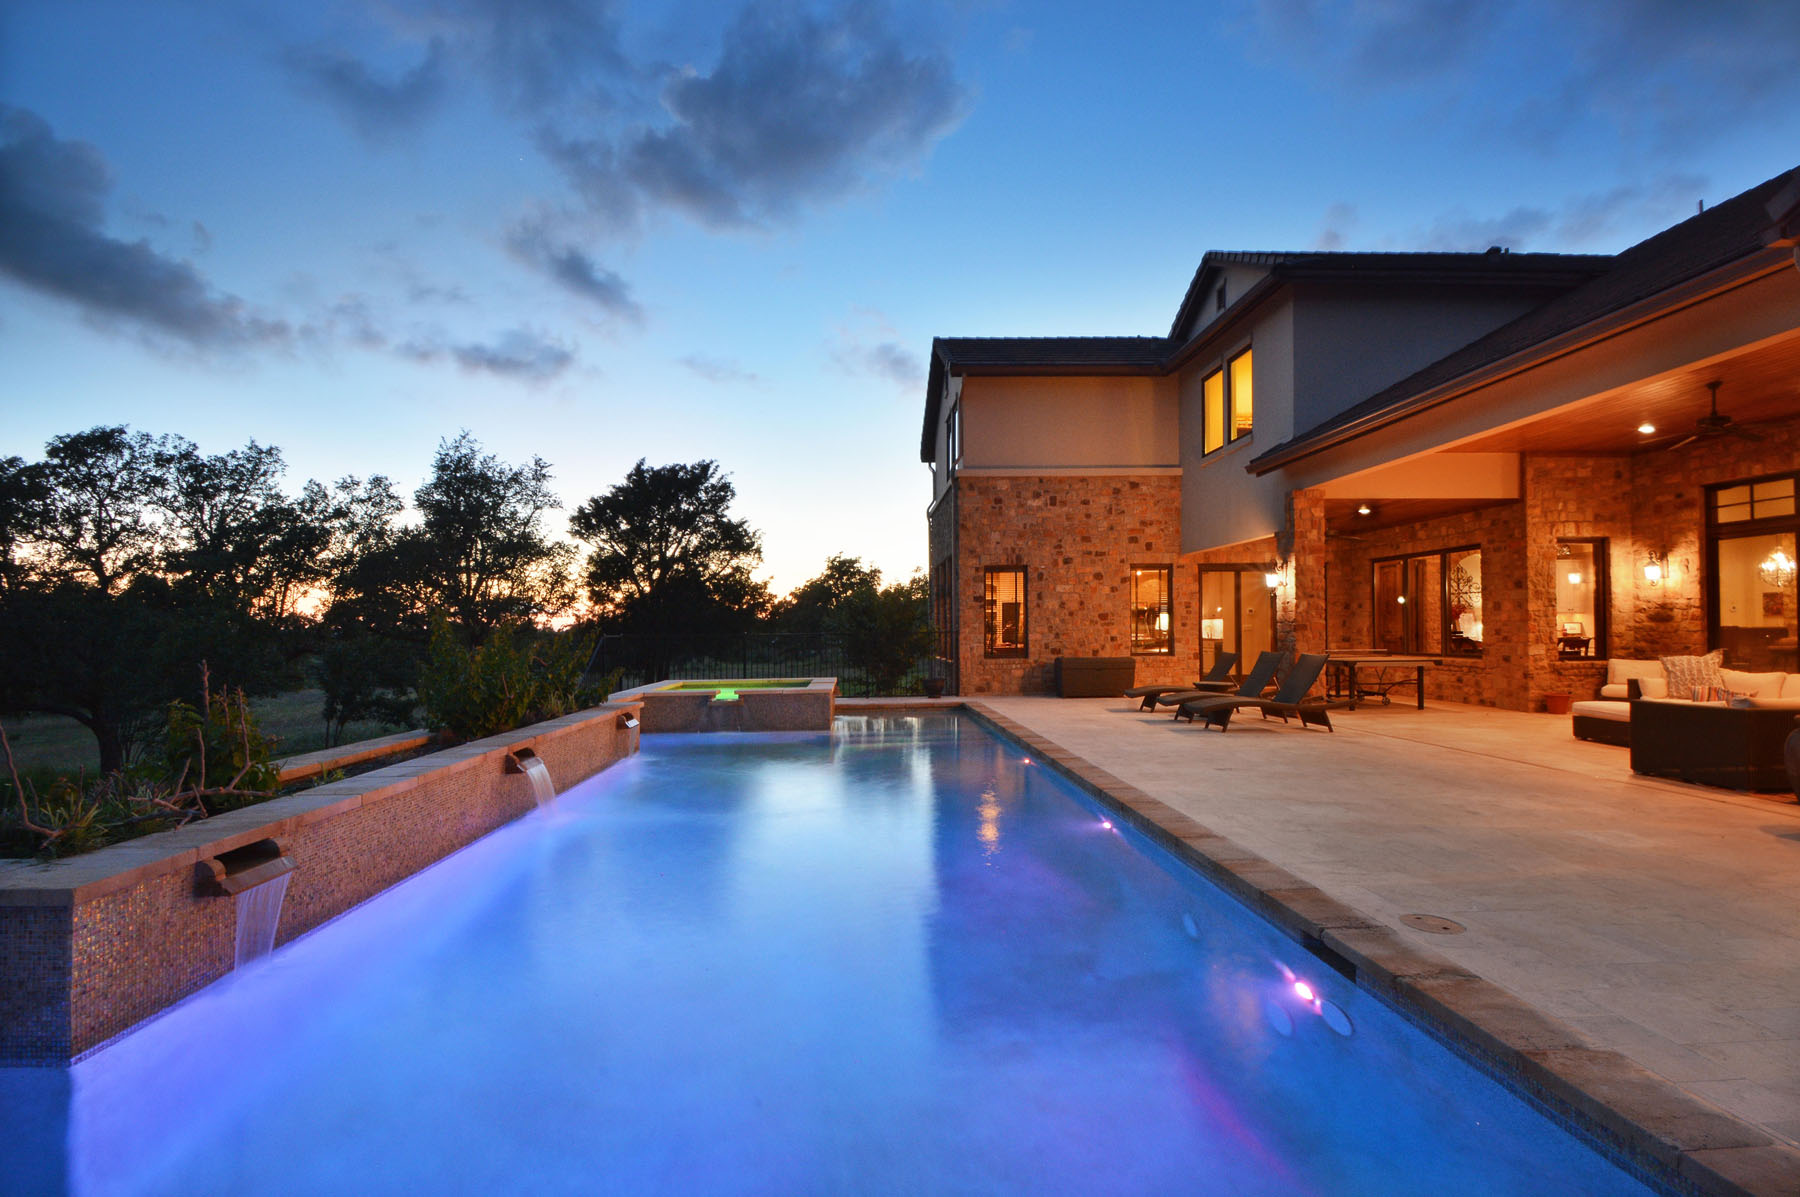 Single Family Home for Sale at Fabulous Views and Privacy 8041 Carlton Ridge Cv Austin, Texas 78738 United States